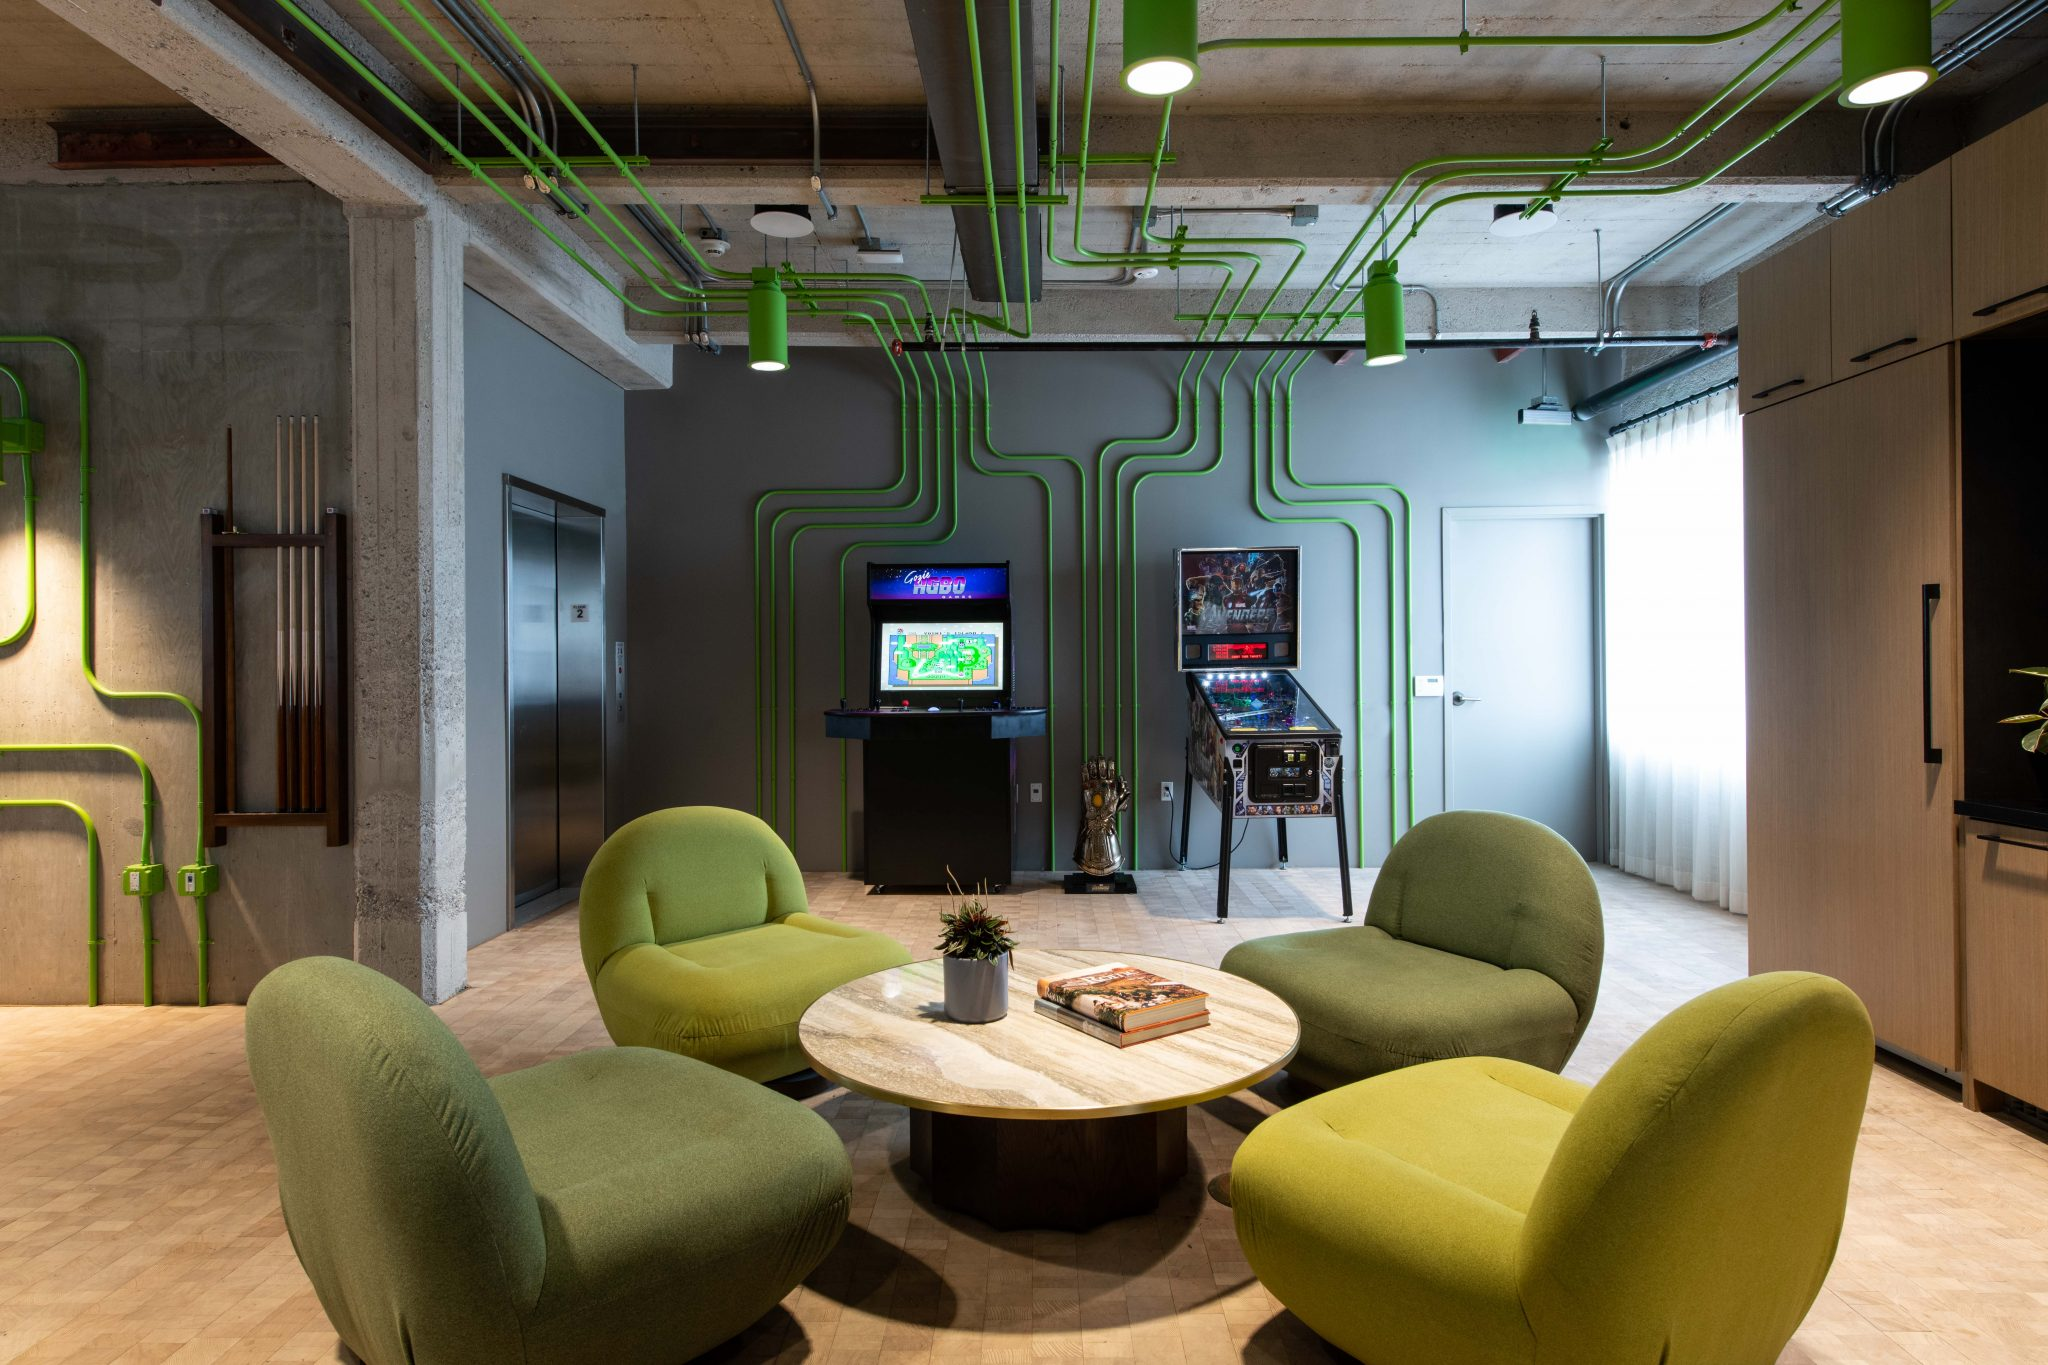 Work lounge. Arcade machine and pinball. Green upholstered chairs.LA shared workspace, DDI Designs